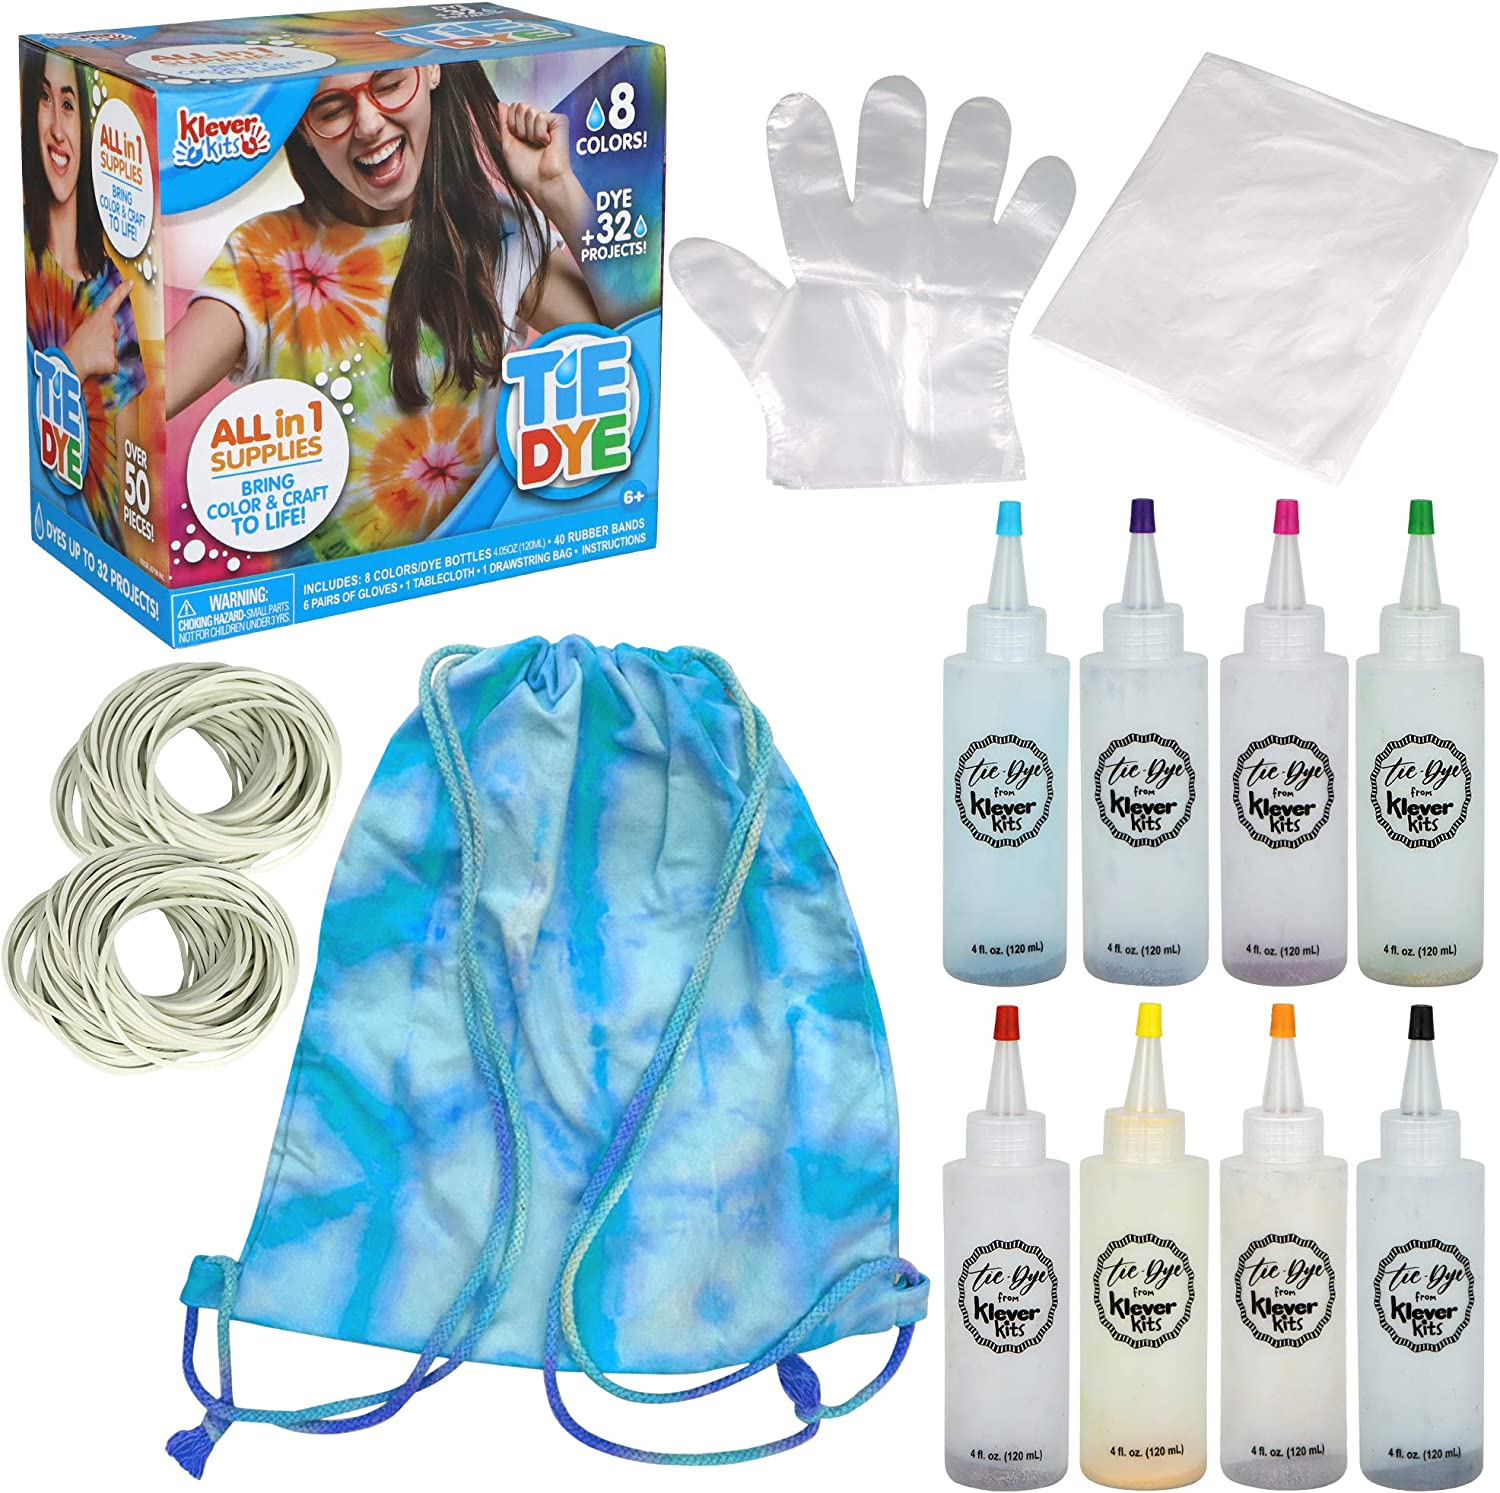 Klever Kits DIY New Super beauty product restock quality top! popularity Tie Dye with Drawstring 8 Rainbow Colo Bag